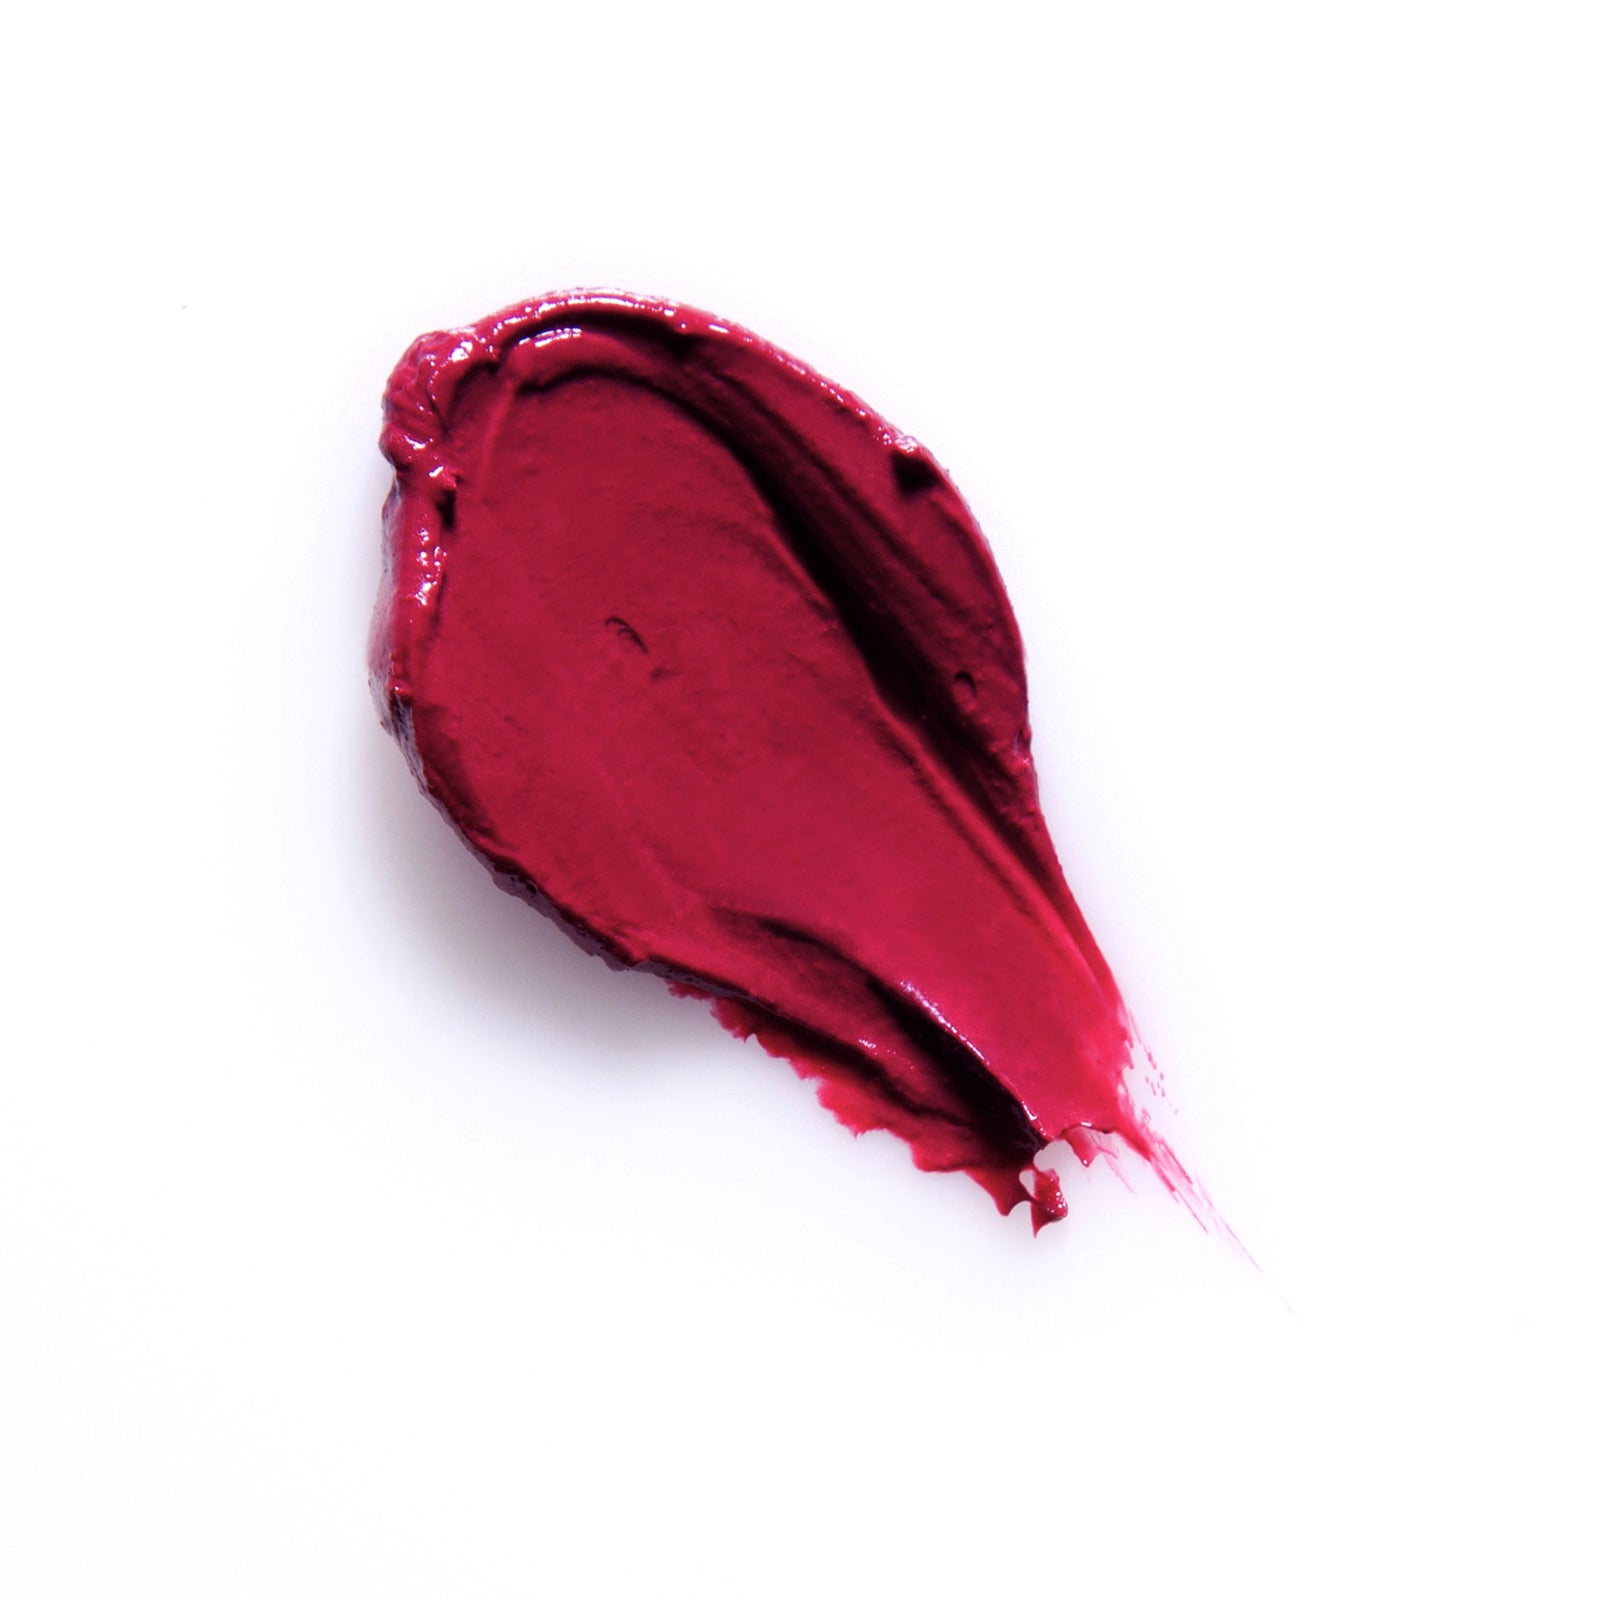 Love in Madness natural pink lipstick cruelty free makeup swatch